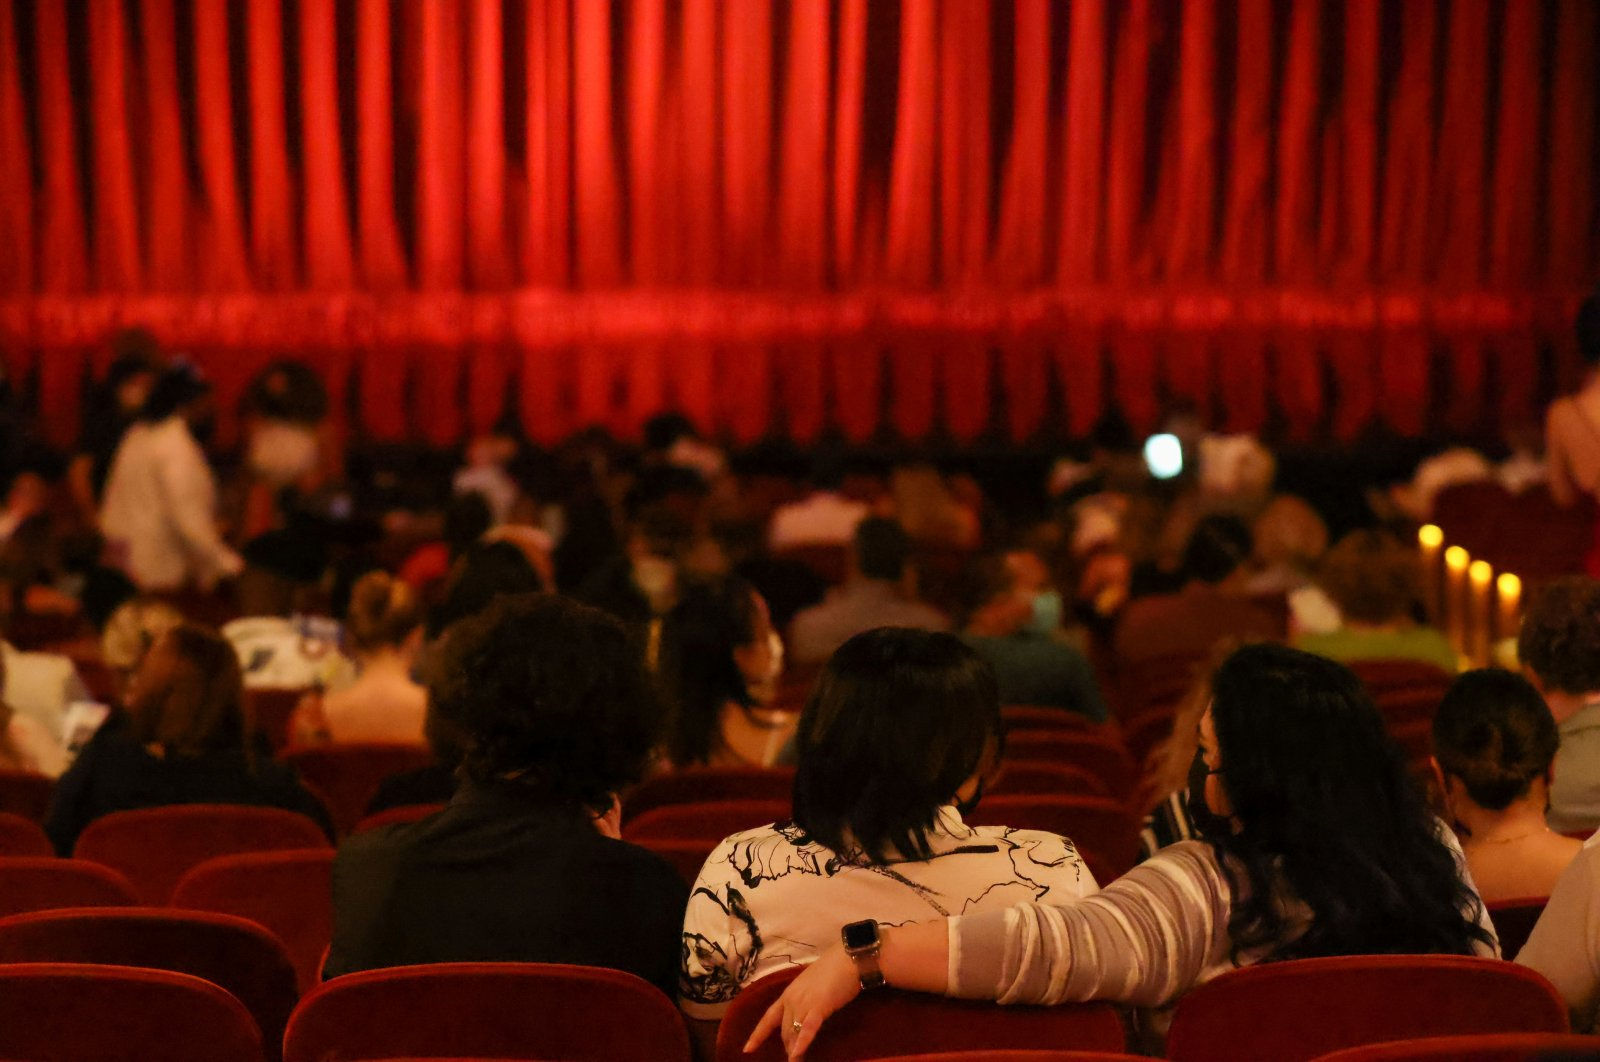 """Guests wait in their seats on the opening night of previews for """"Pass Over,"""" following the 17-month shutdown of Broadway due to COVID-19, at the August Wilson Theater in New York City, U.S., Aug. 4, 2021. (Reuters Photo)"""